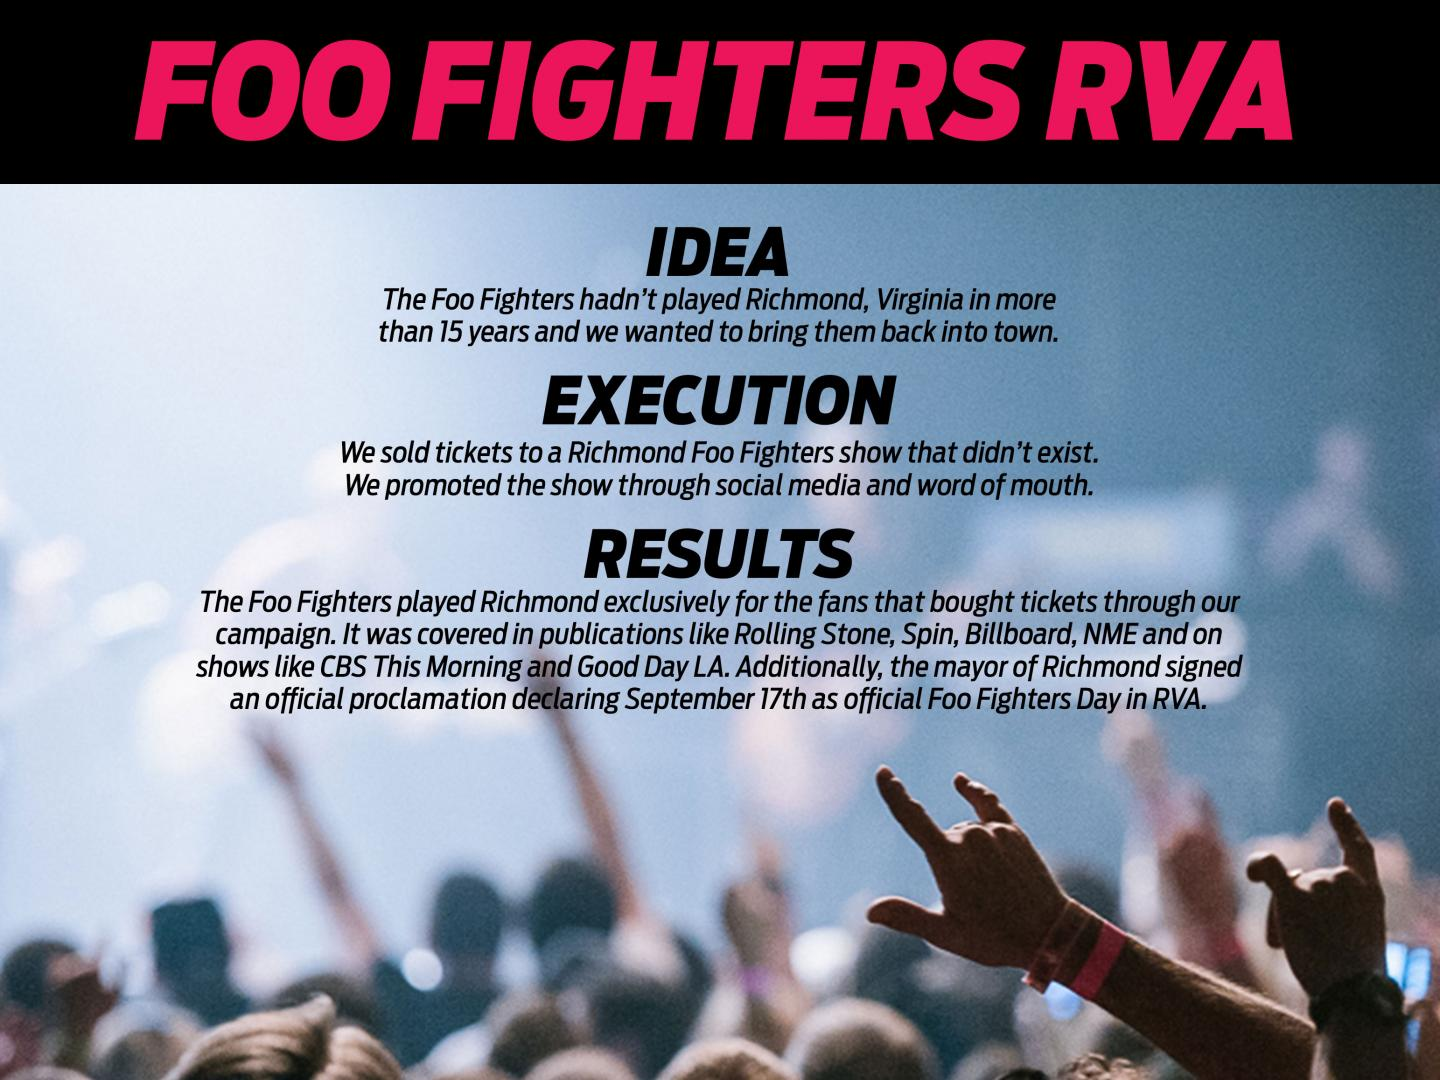 Foo Fighters RVA Thumbnail